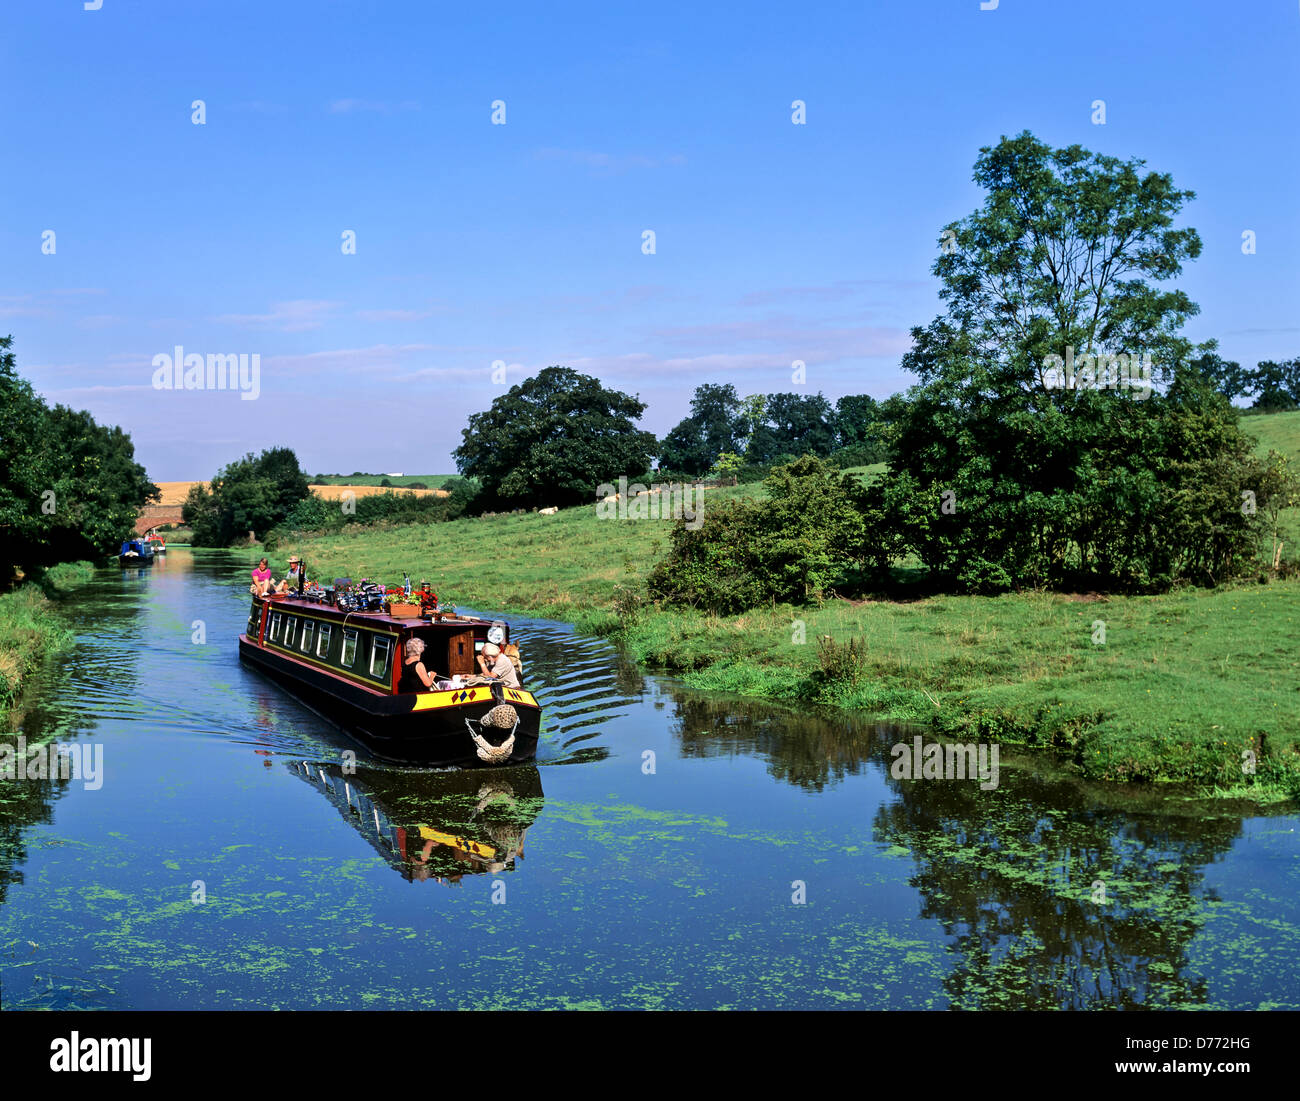 8680. Narrow boat on the Oxford canal, Warwickshire, England, UK, Europe - Stock Image